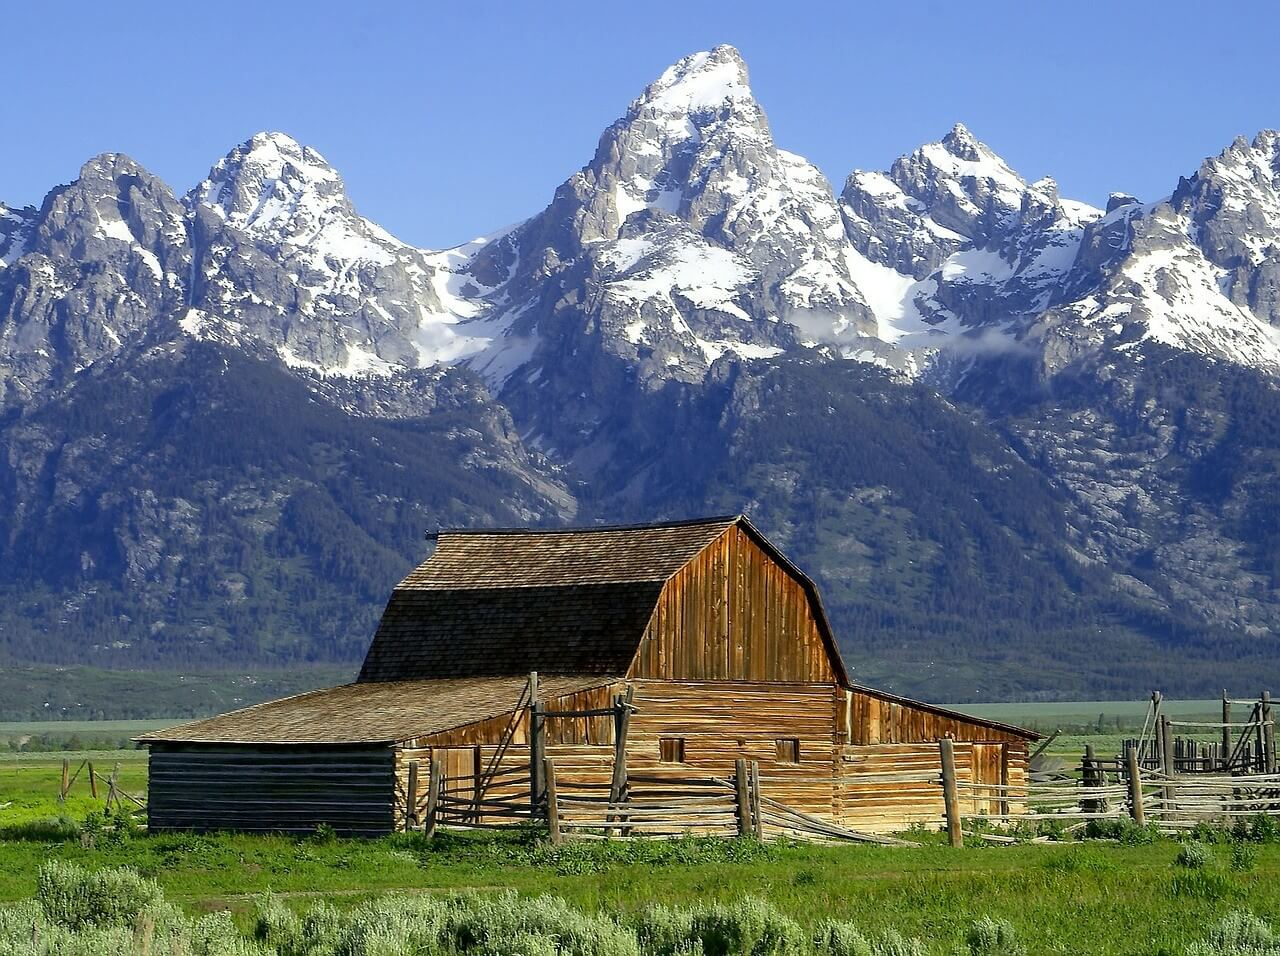 Moulton Barn is one of the most majestic views, placing it on our Jackson Hole must see spots list.